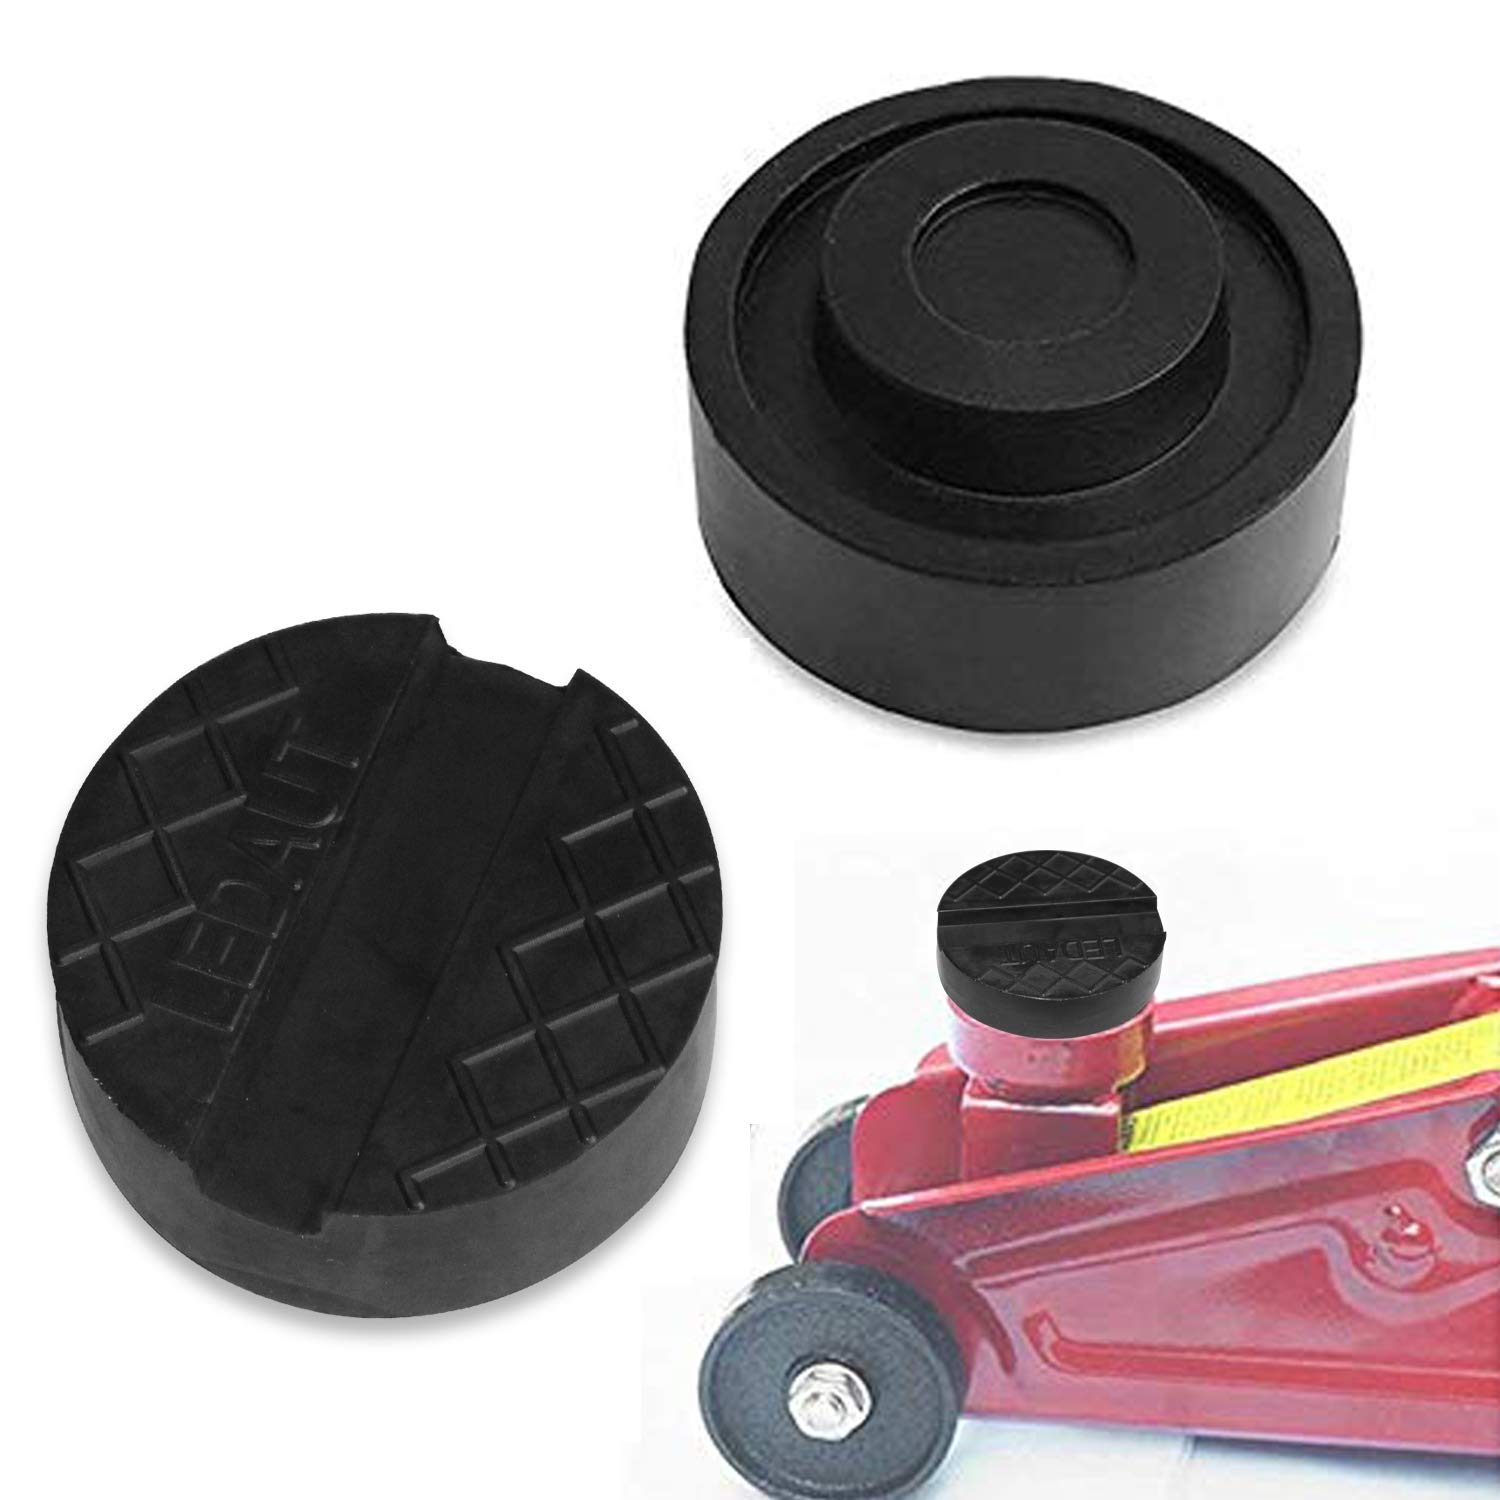 Robust Rubber Jack Pads 2 Pcs – ZHUBANG Black Rubber Pads with Grooves Universal Slotted Jack Pad Block for Protect Trolley Vehicle 65mm X 25mm Black